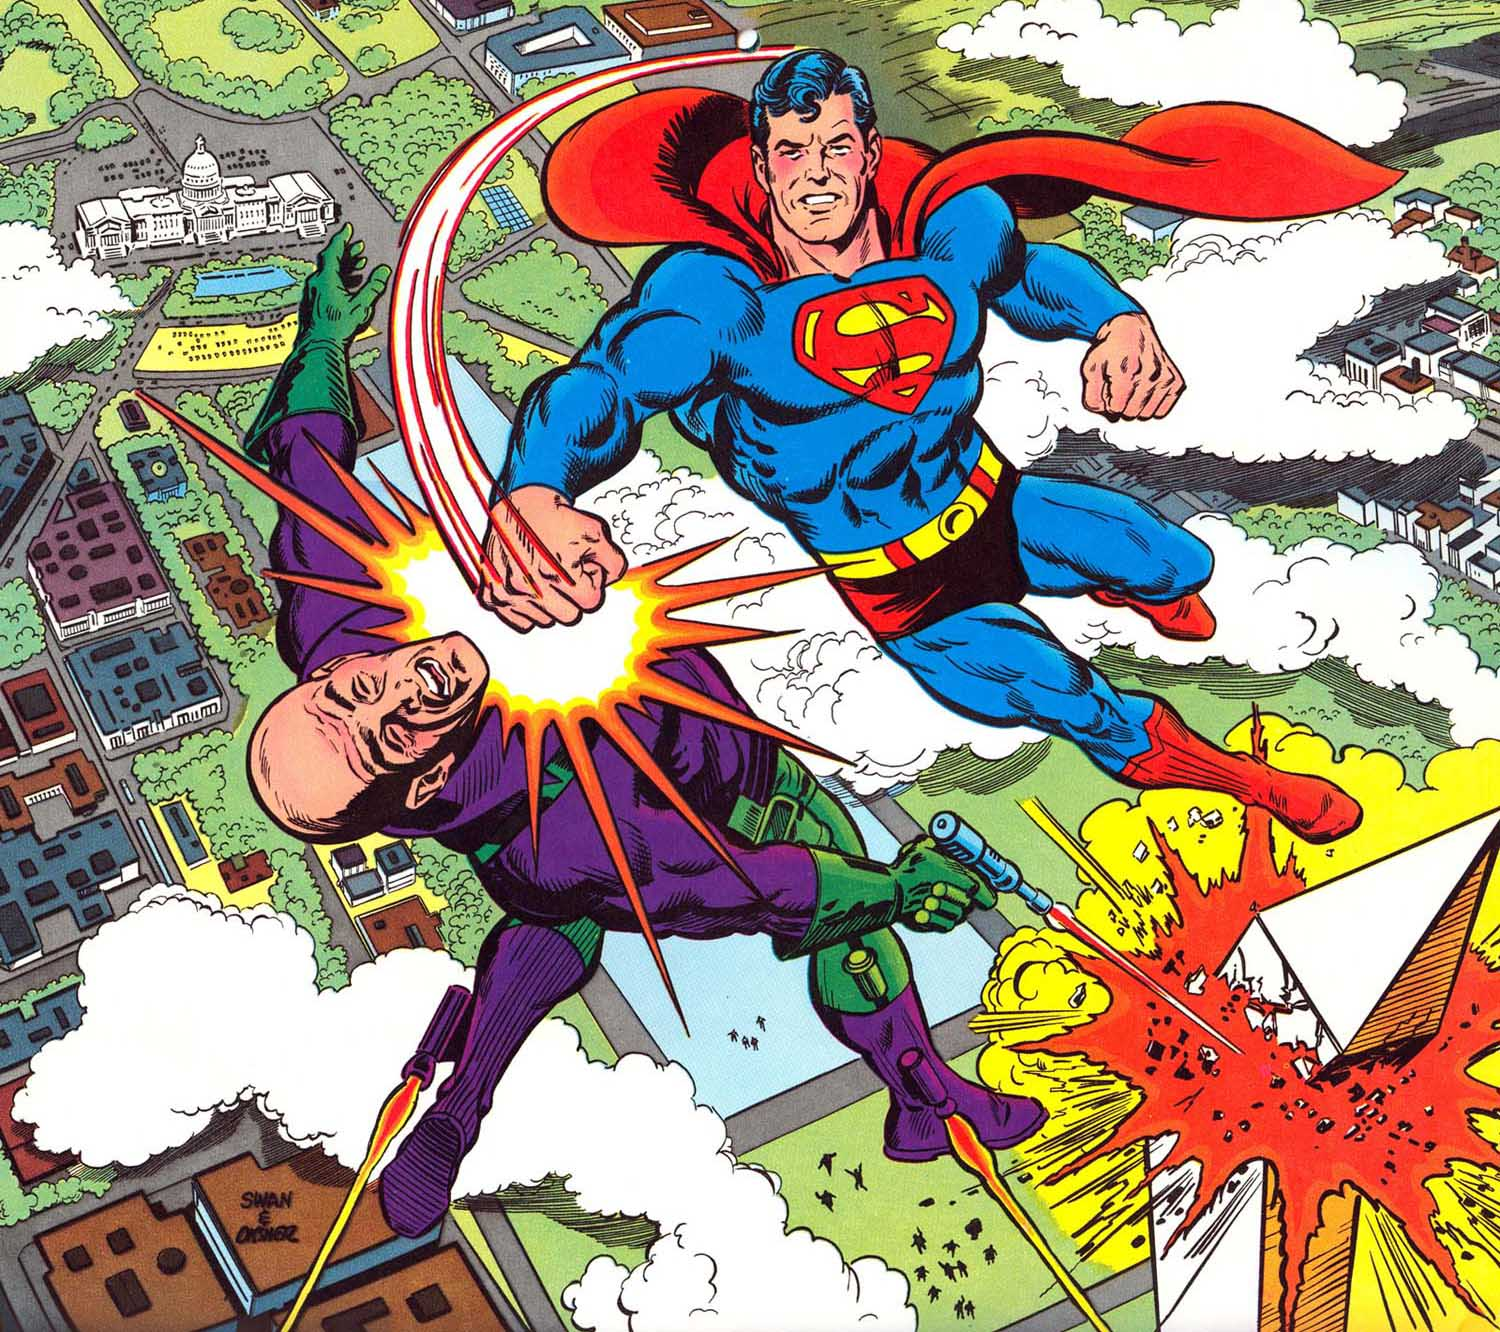 superman vs lex luthor dreager1s blog